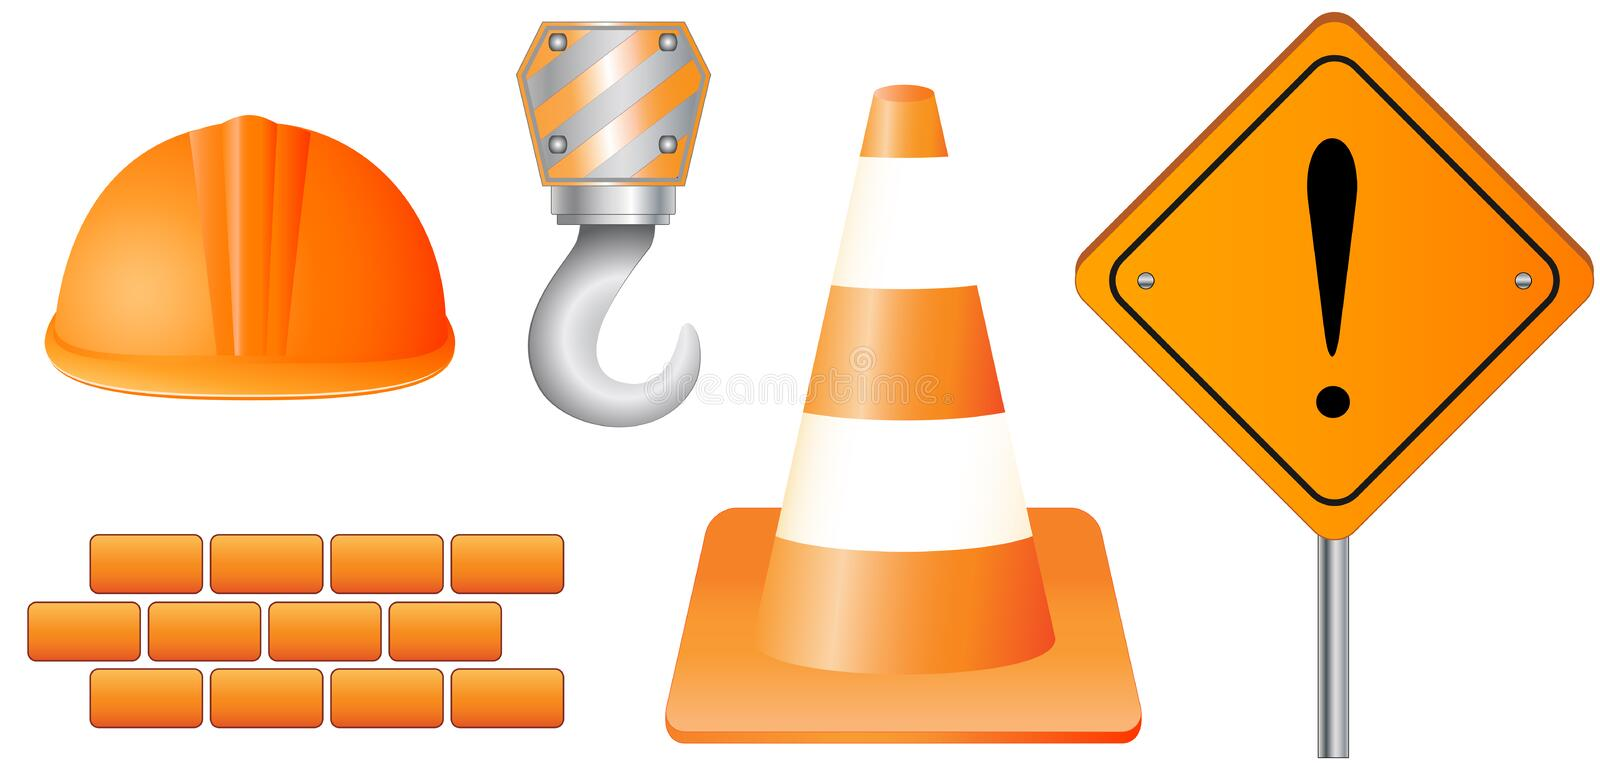 Isolated Construction Object Stock Image